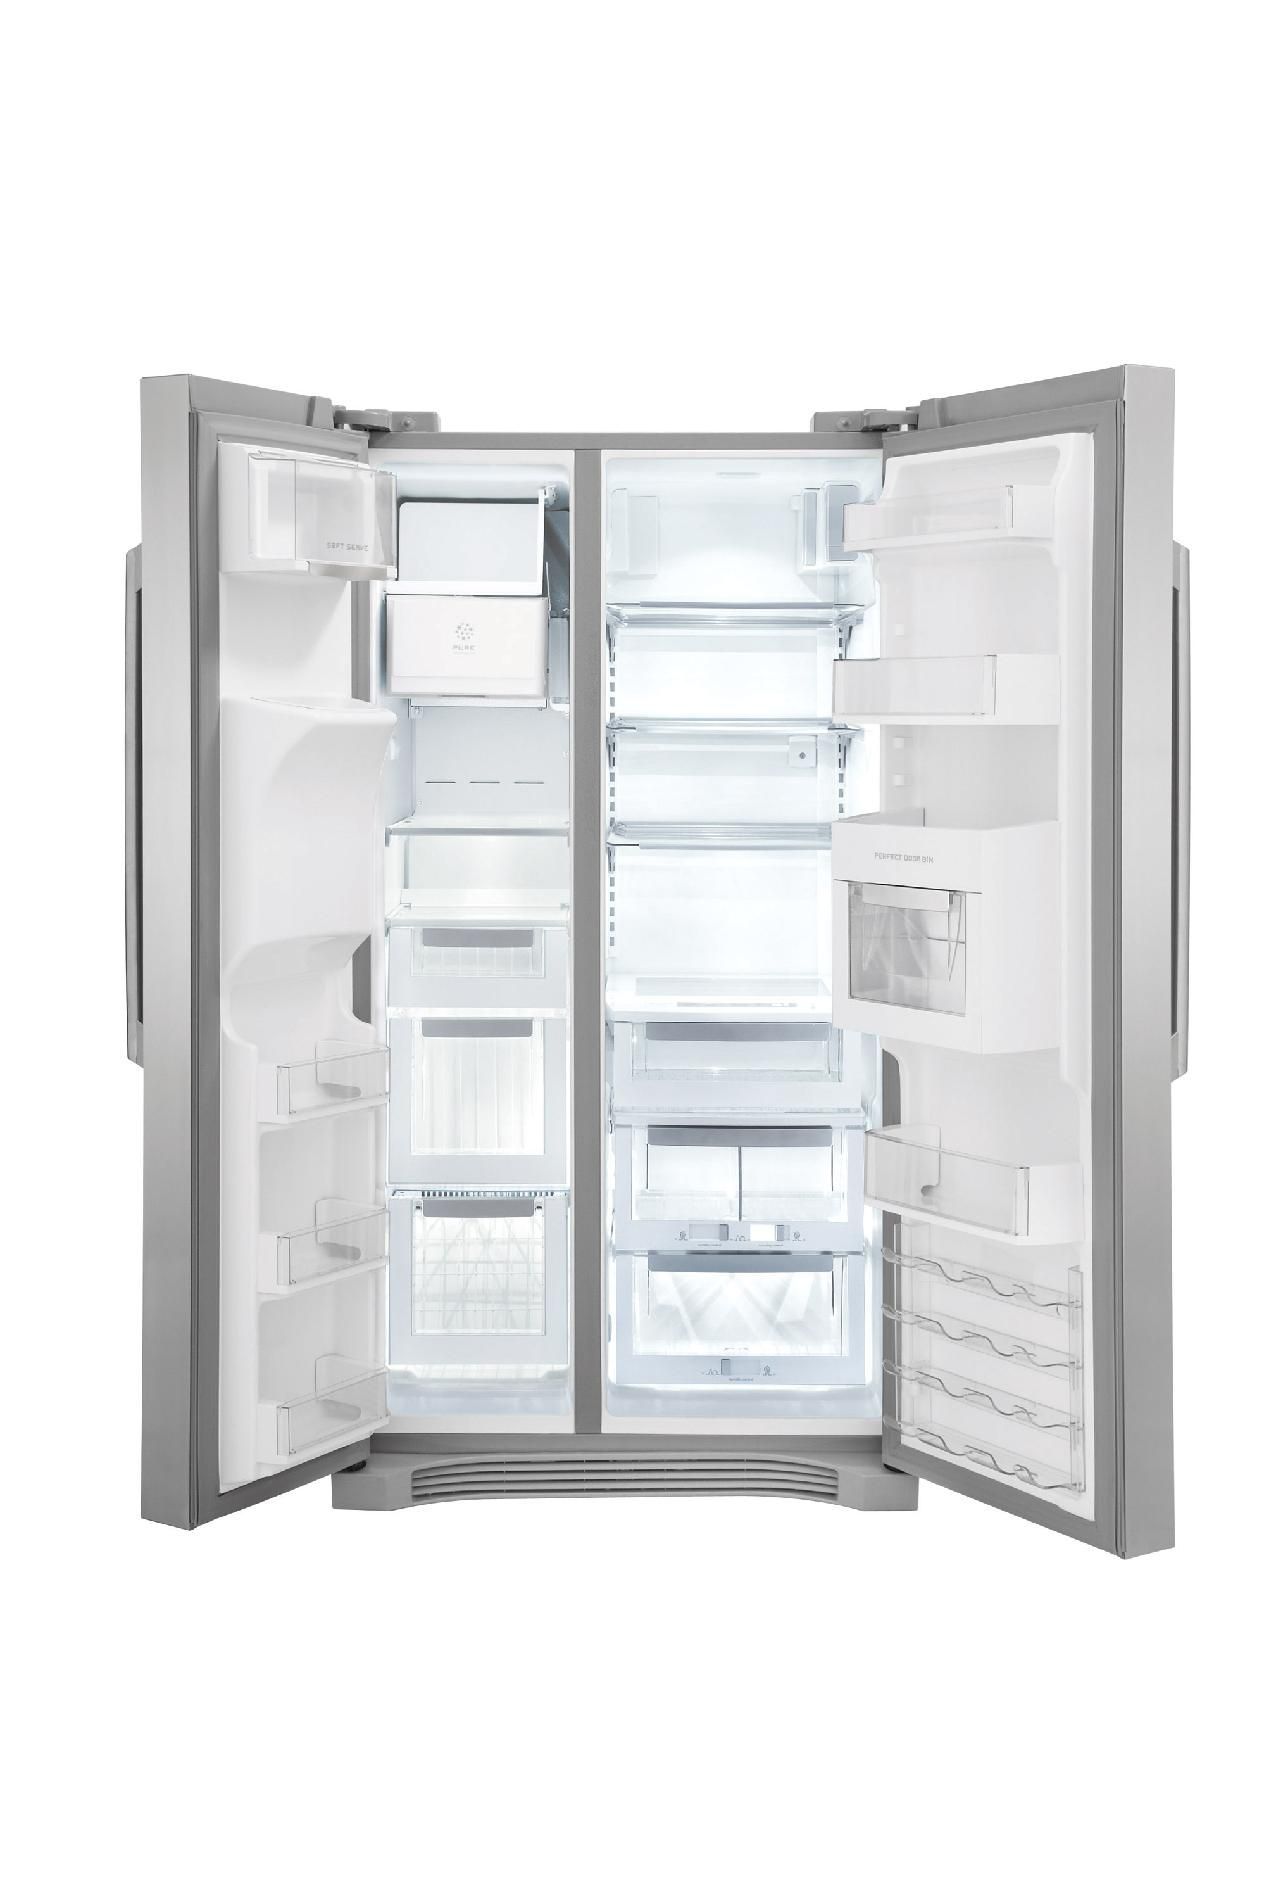 Electrolux 26 cu. ft. Side-By-Side Refrigerator - Stainless Steel